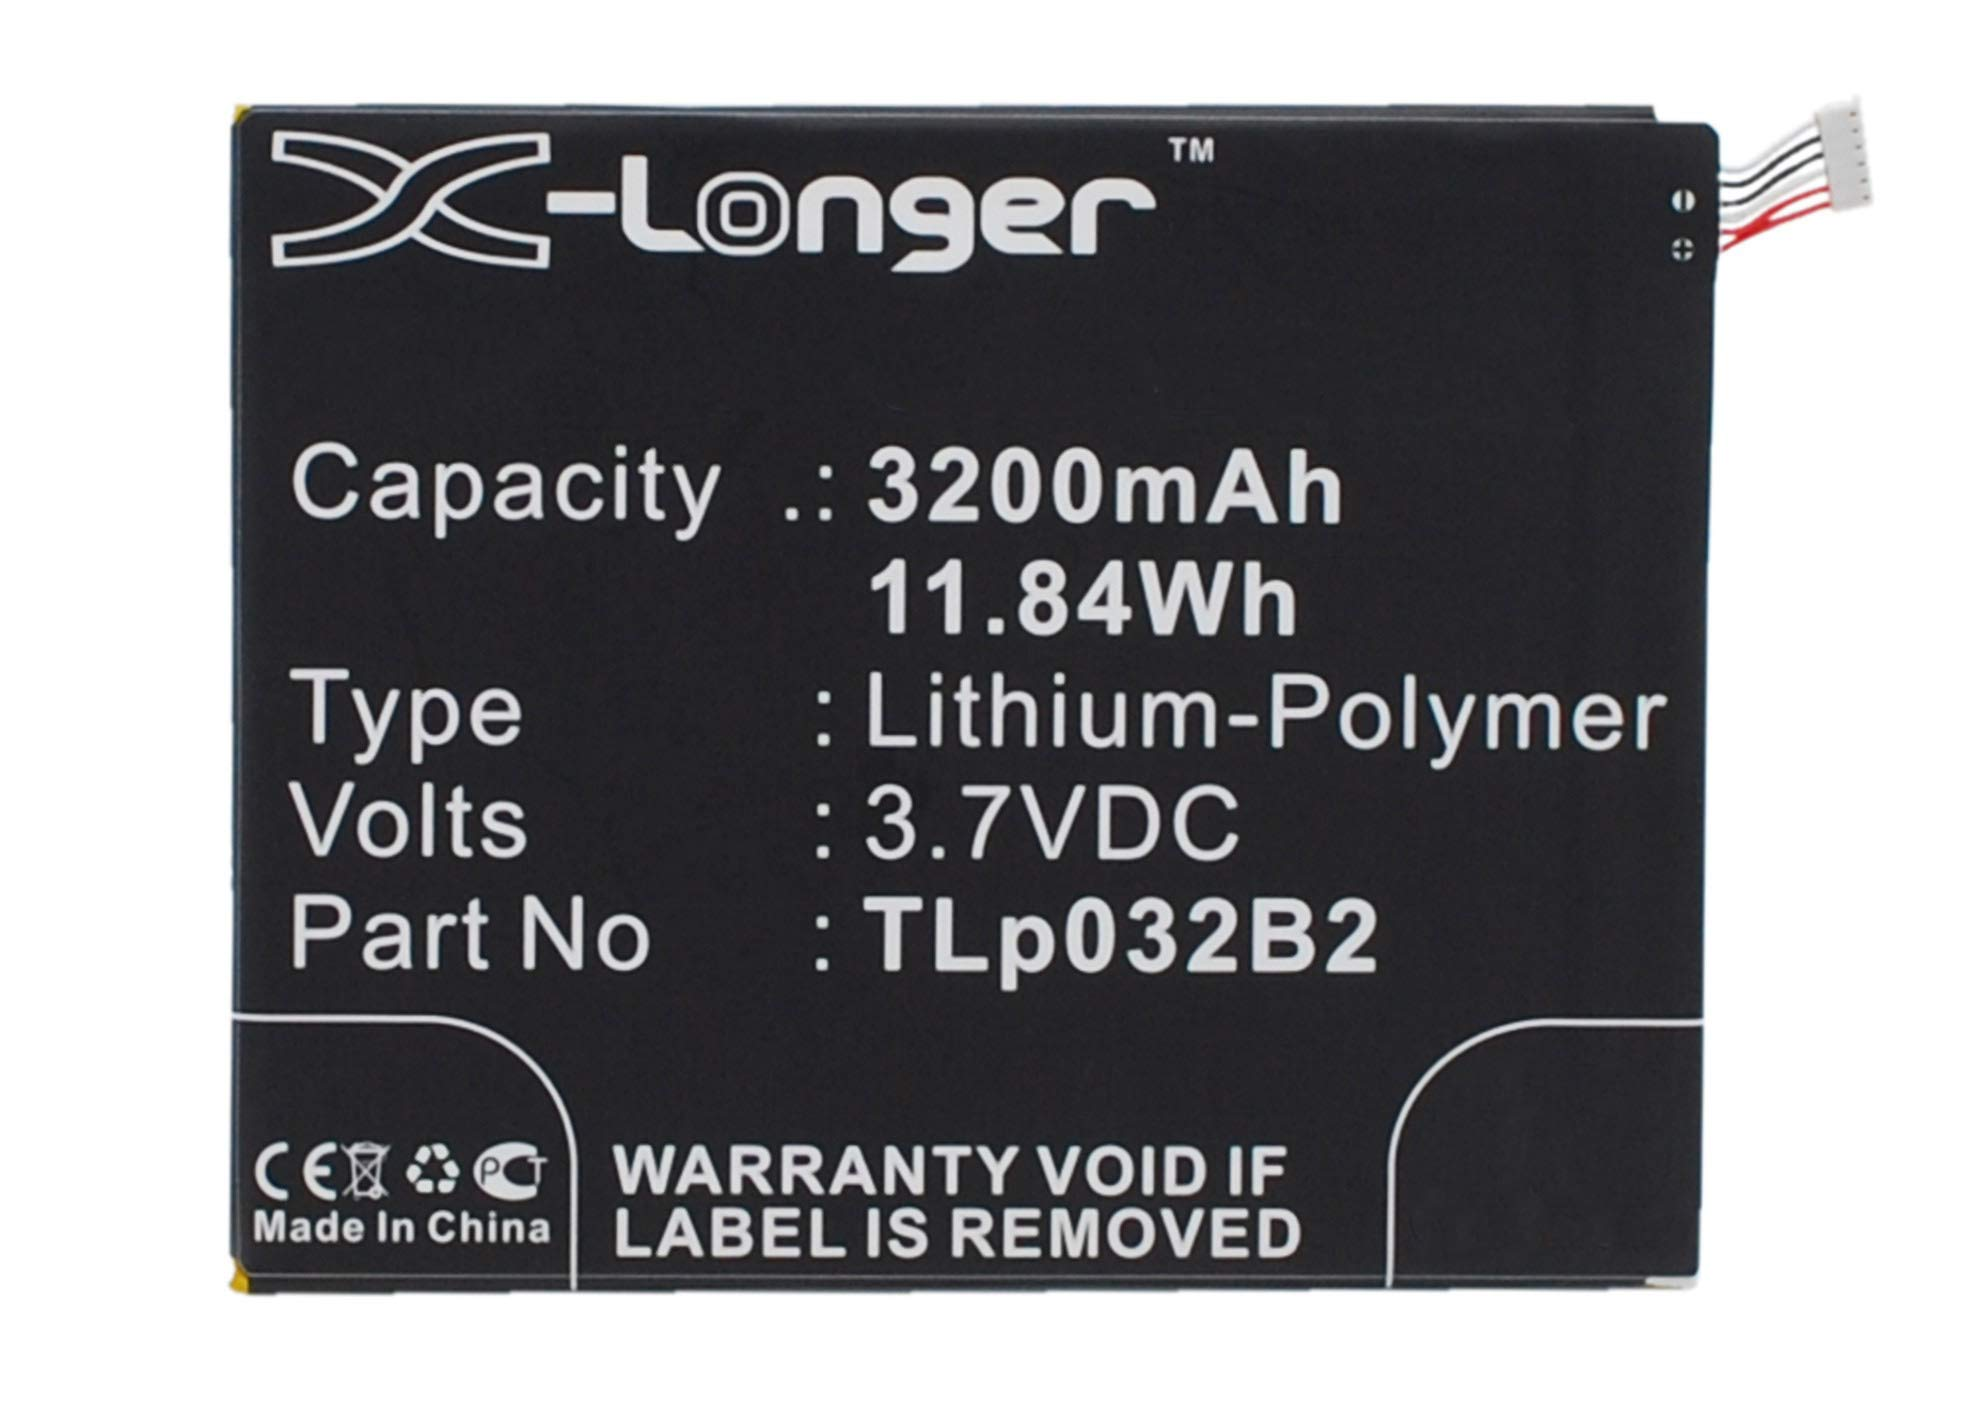 Synergy Digital Battery Compatible with Alcatel One Touch Pixi 3 8.0 3G Tablet Battery (Li-Pol, 3.7V, 3200 mAh) - Repl. Alcatel TLp032B2 Battery